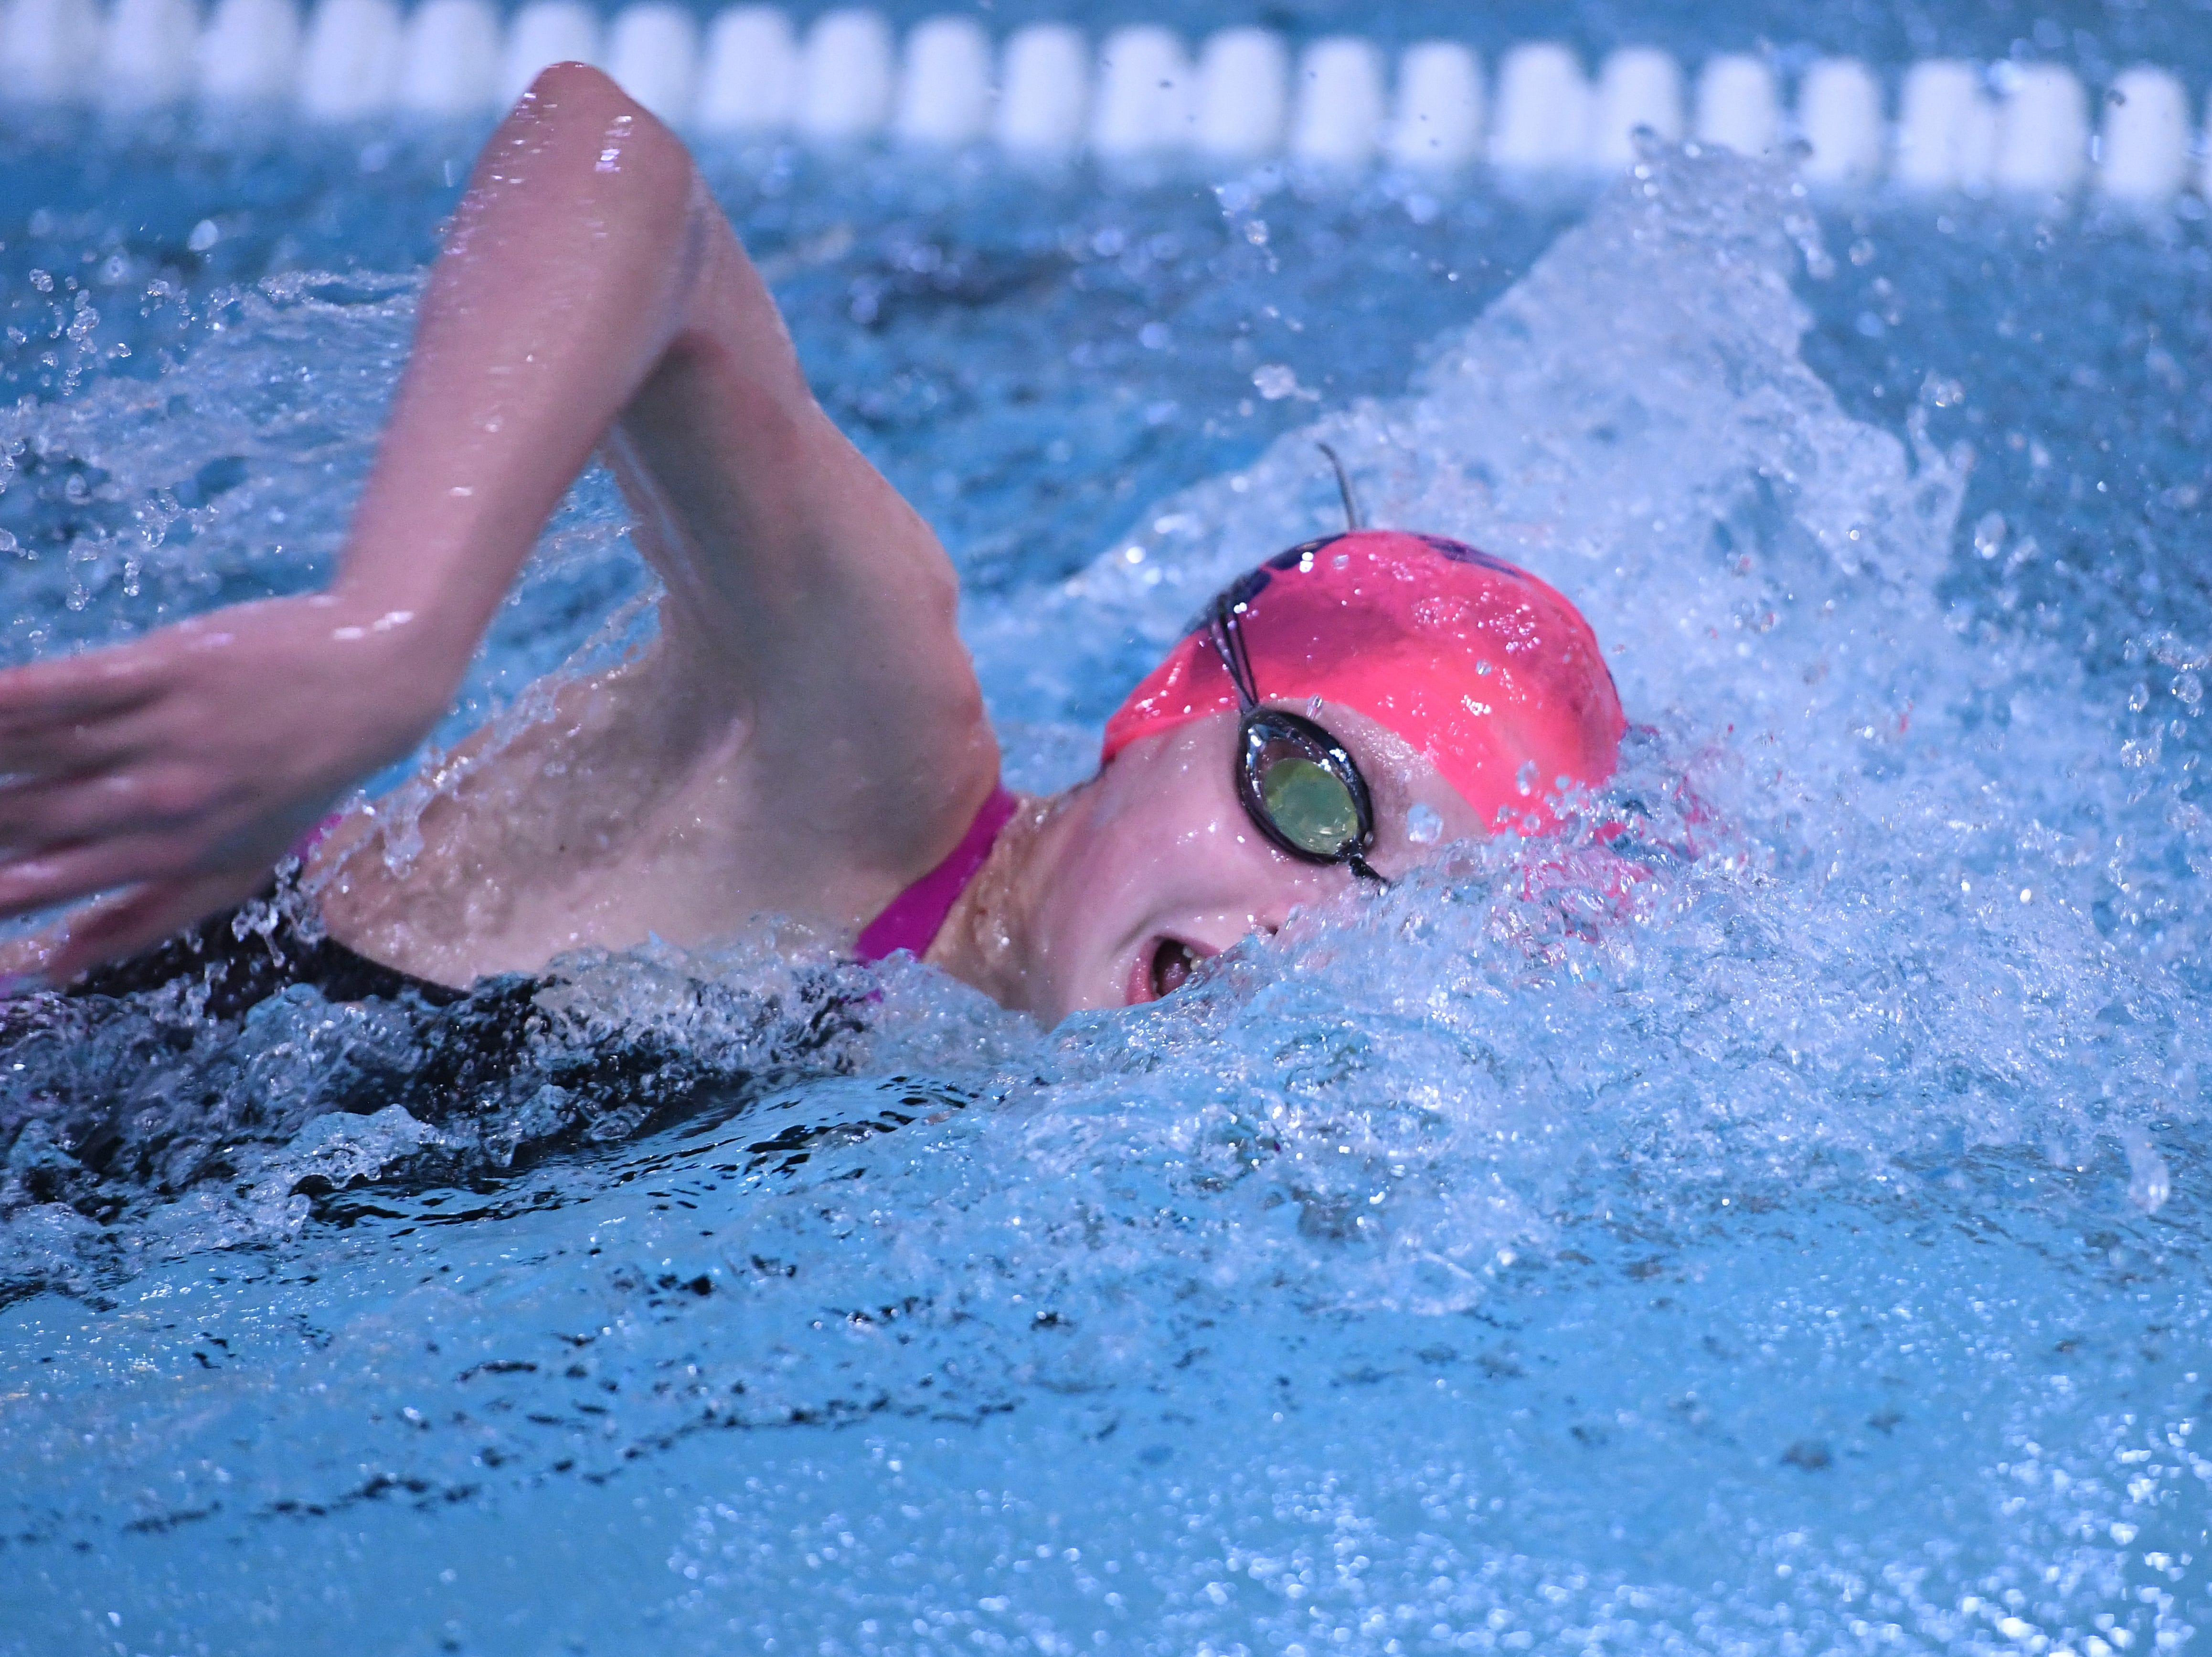 Morris County Swimming Championships at Morristown High School on Saturday, January 26, 2019. Sara Barrett of Chatham swims the 400-meter freestyle.